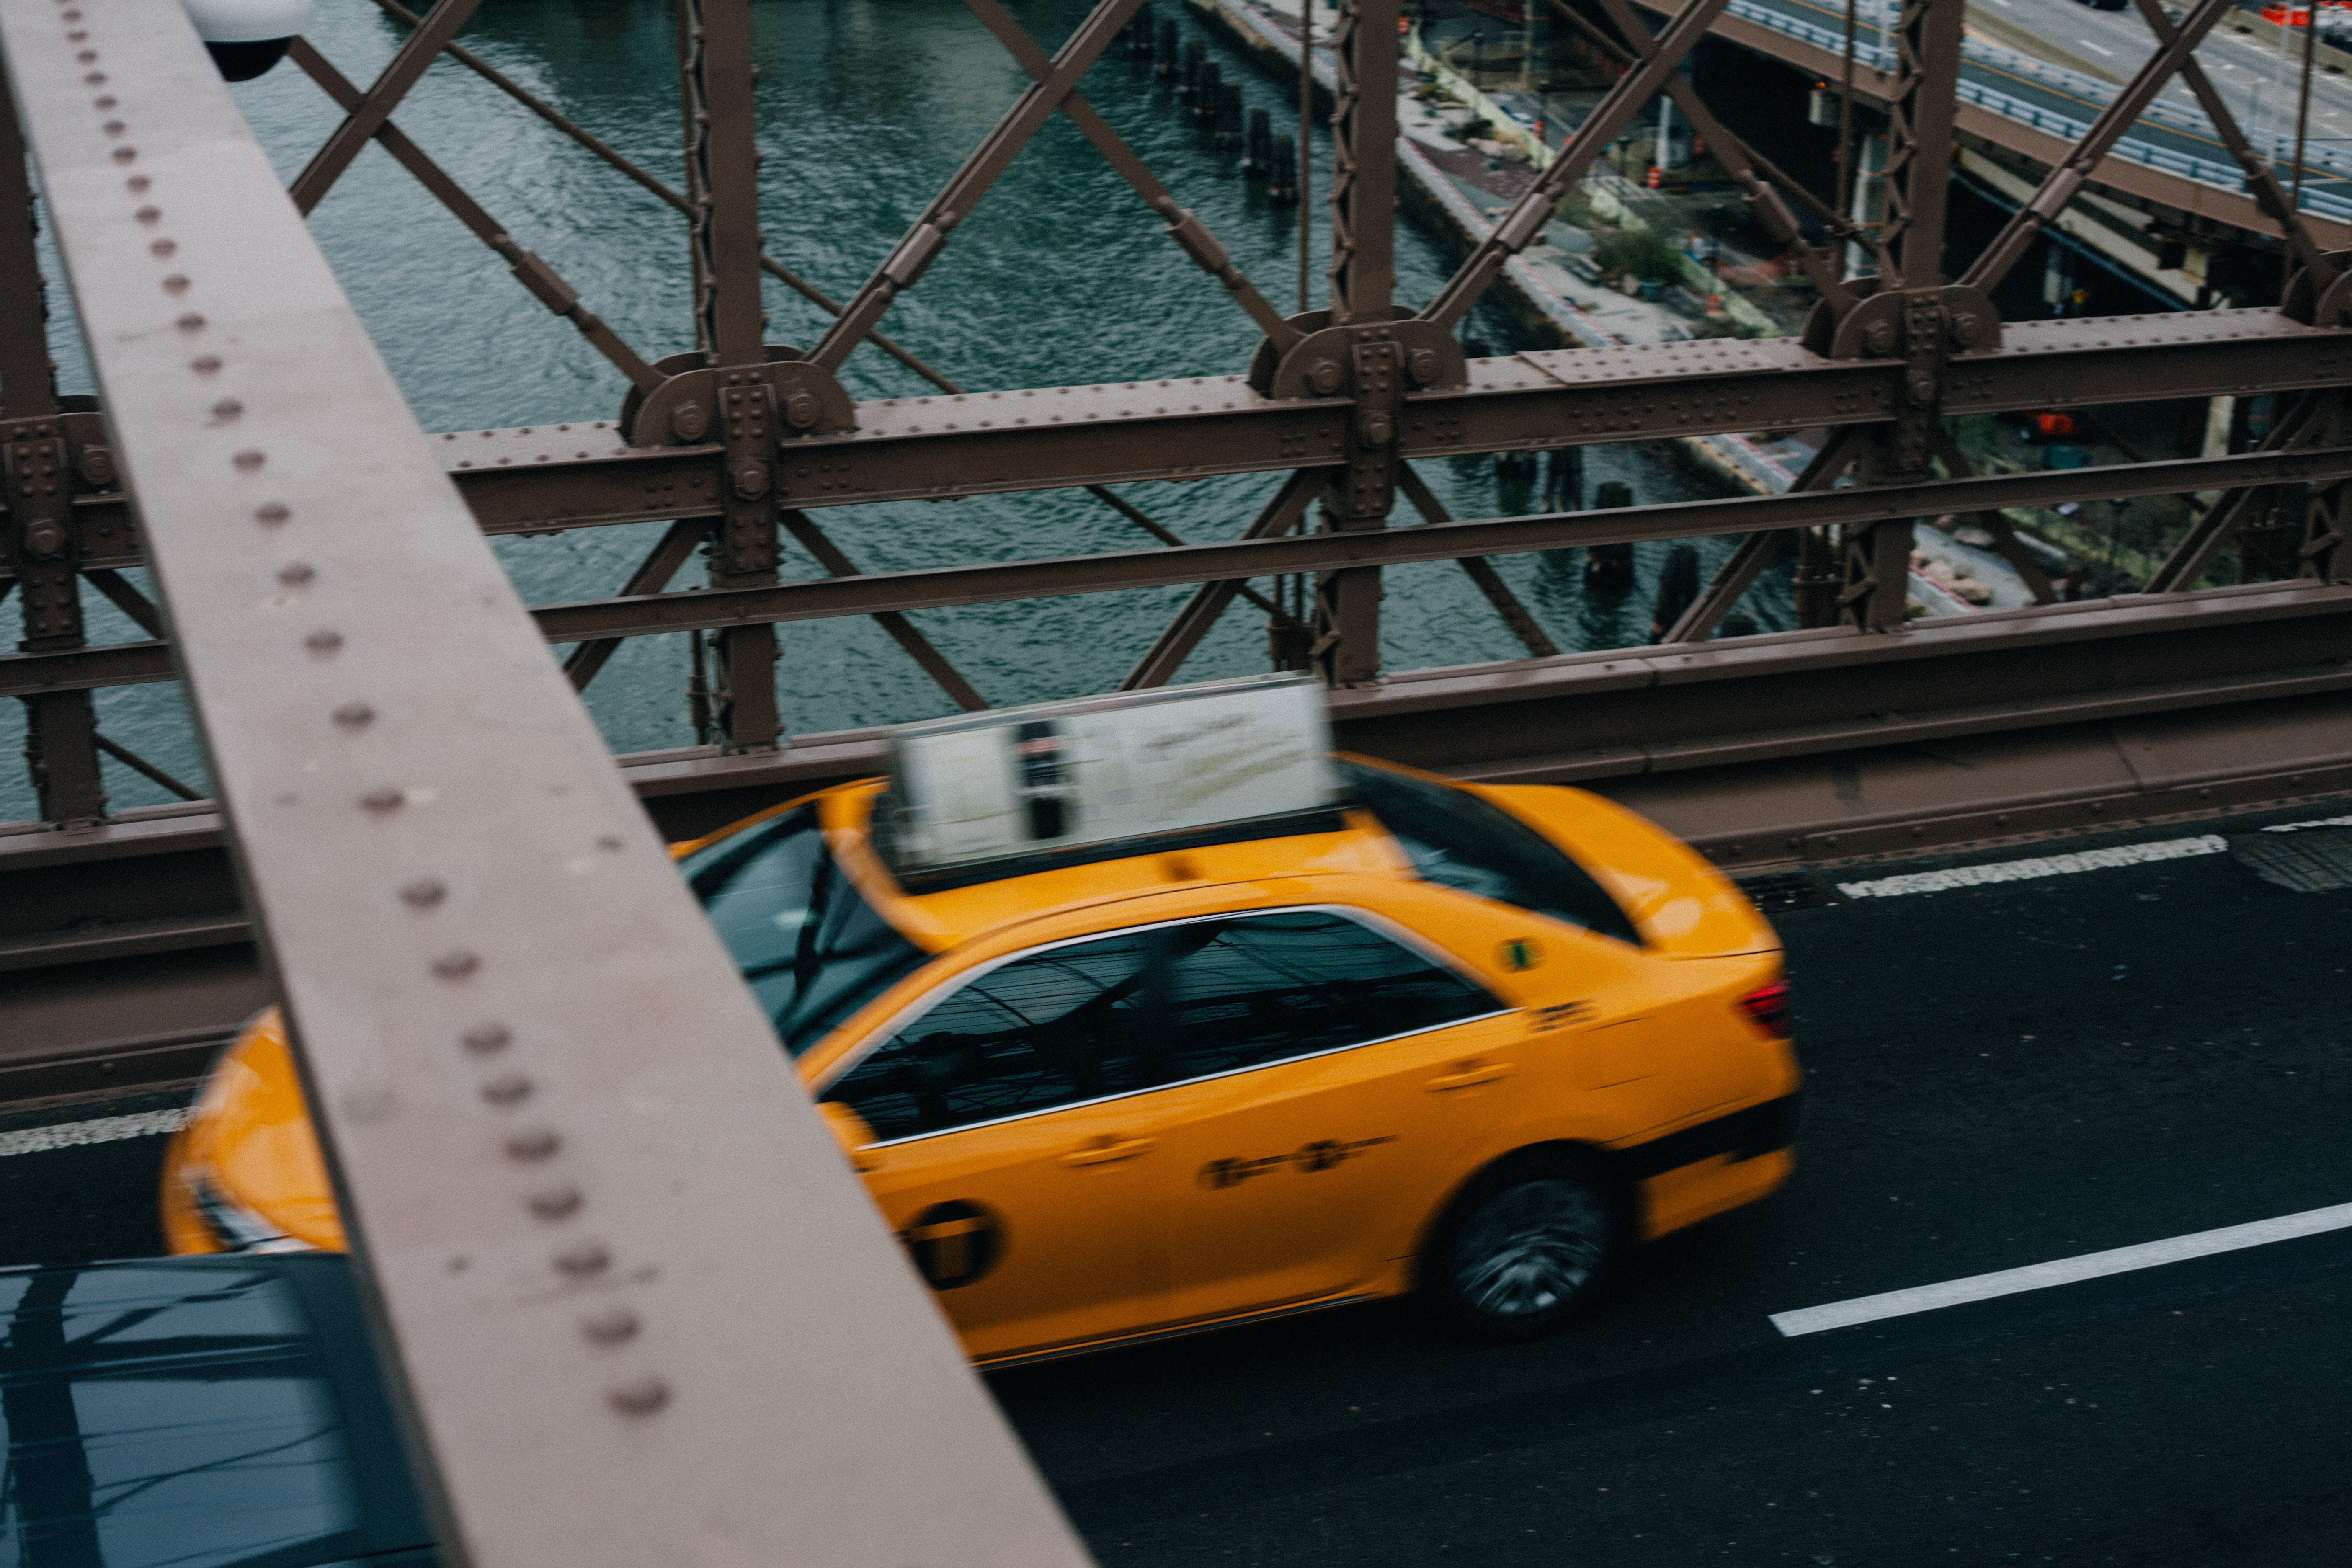 A high view of a yellow taxi cab driving on a bridge